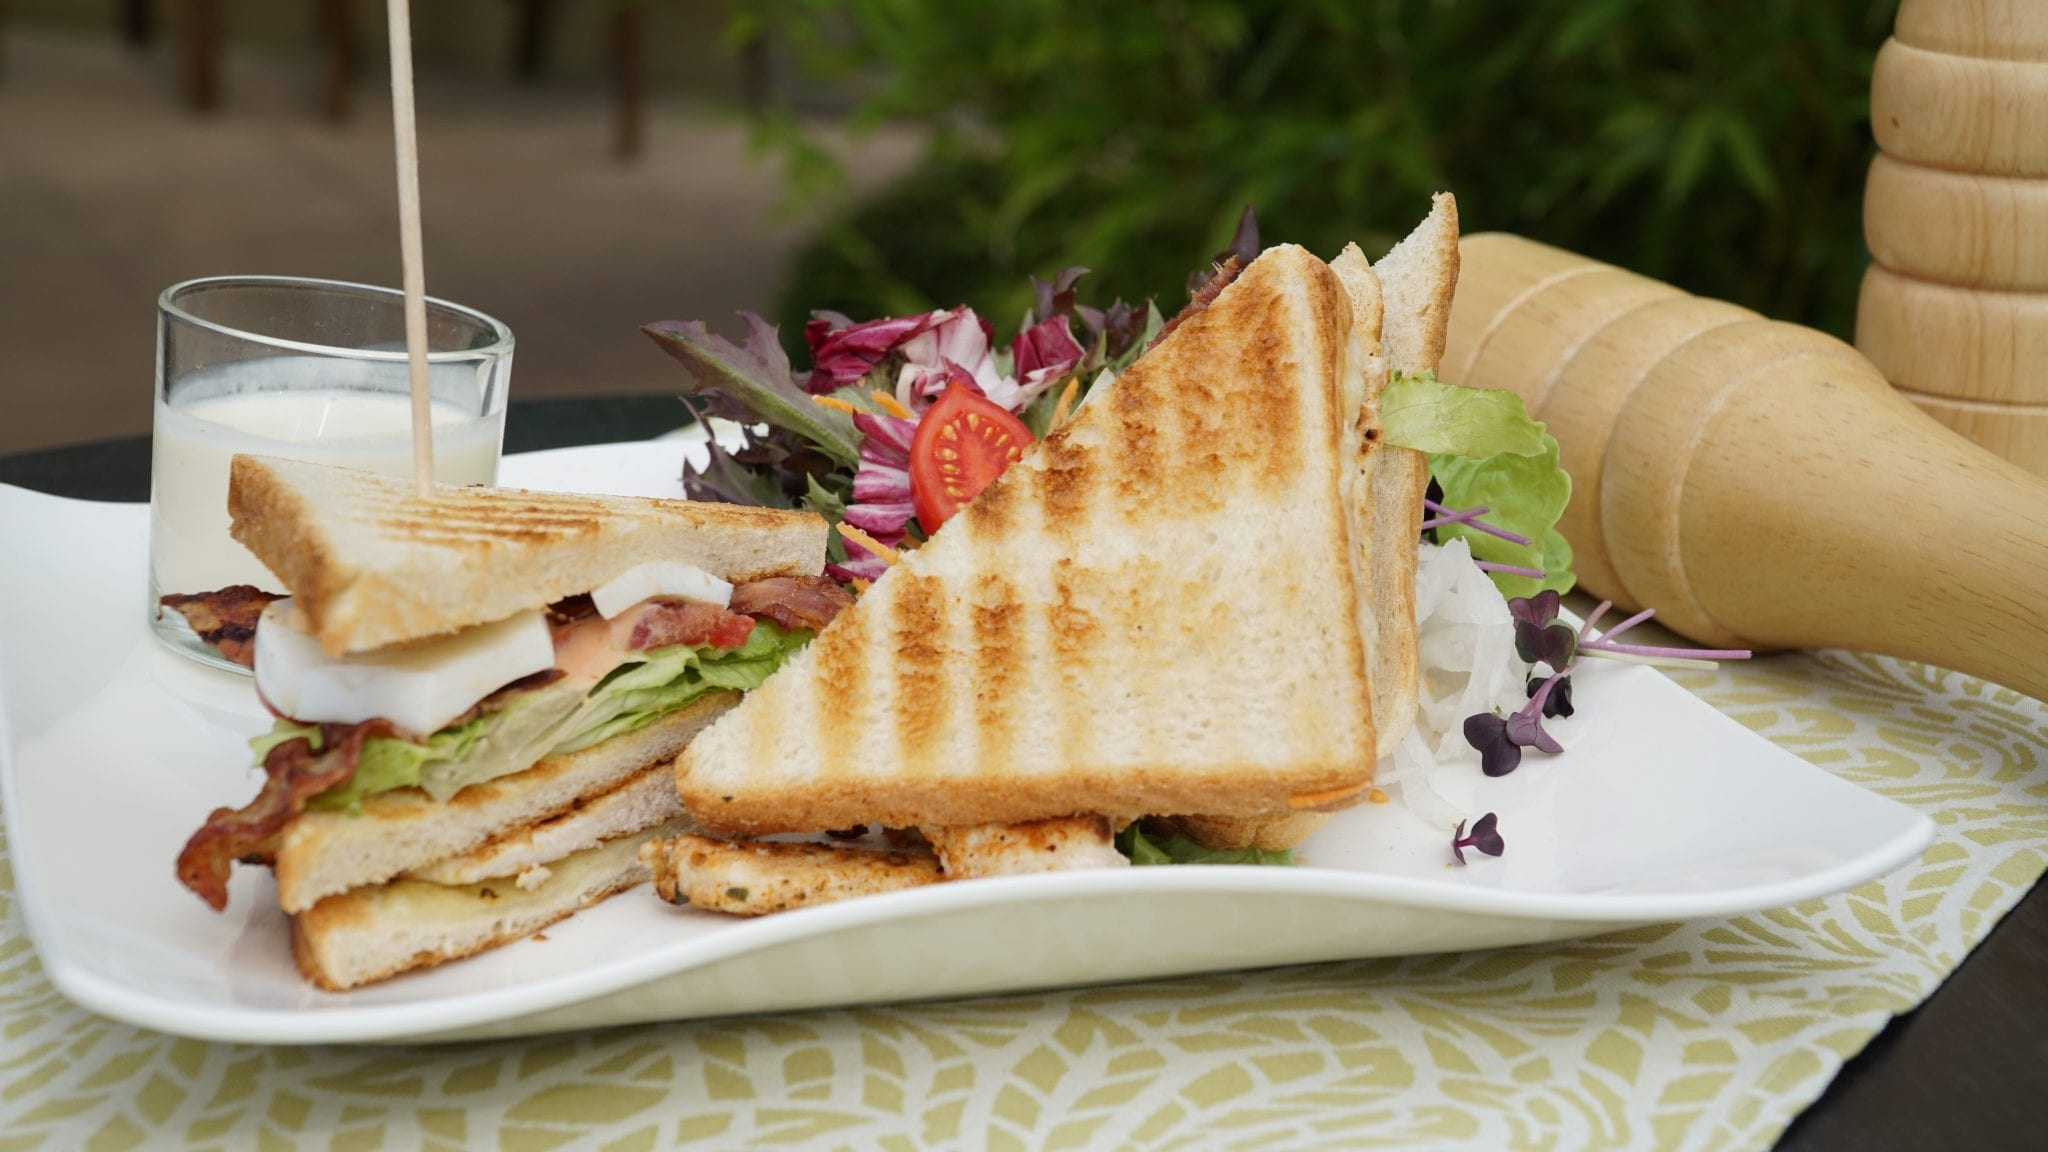 Clubsandwich in der THERME - Bar, Bistro und Restaurant